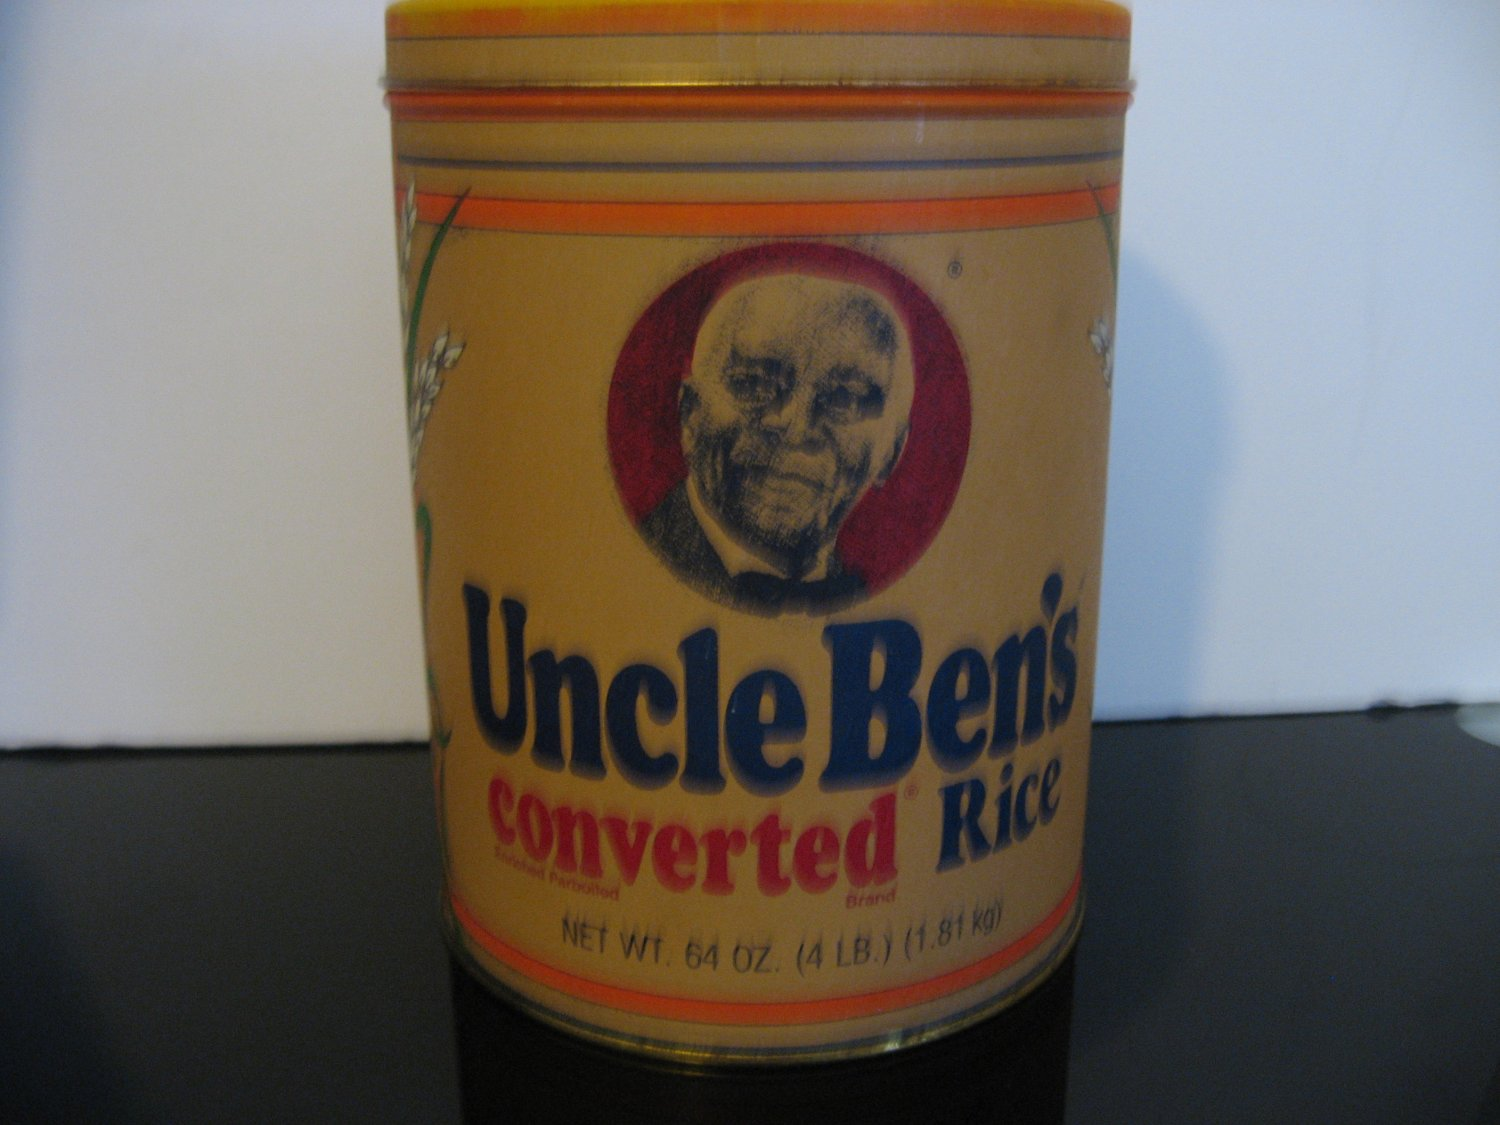 Vintage 1985 - Replica 1947 Uncle Ben's Converted Rice Collectible Tin